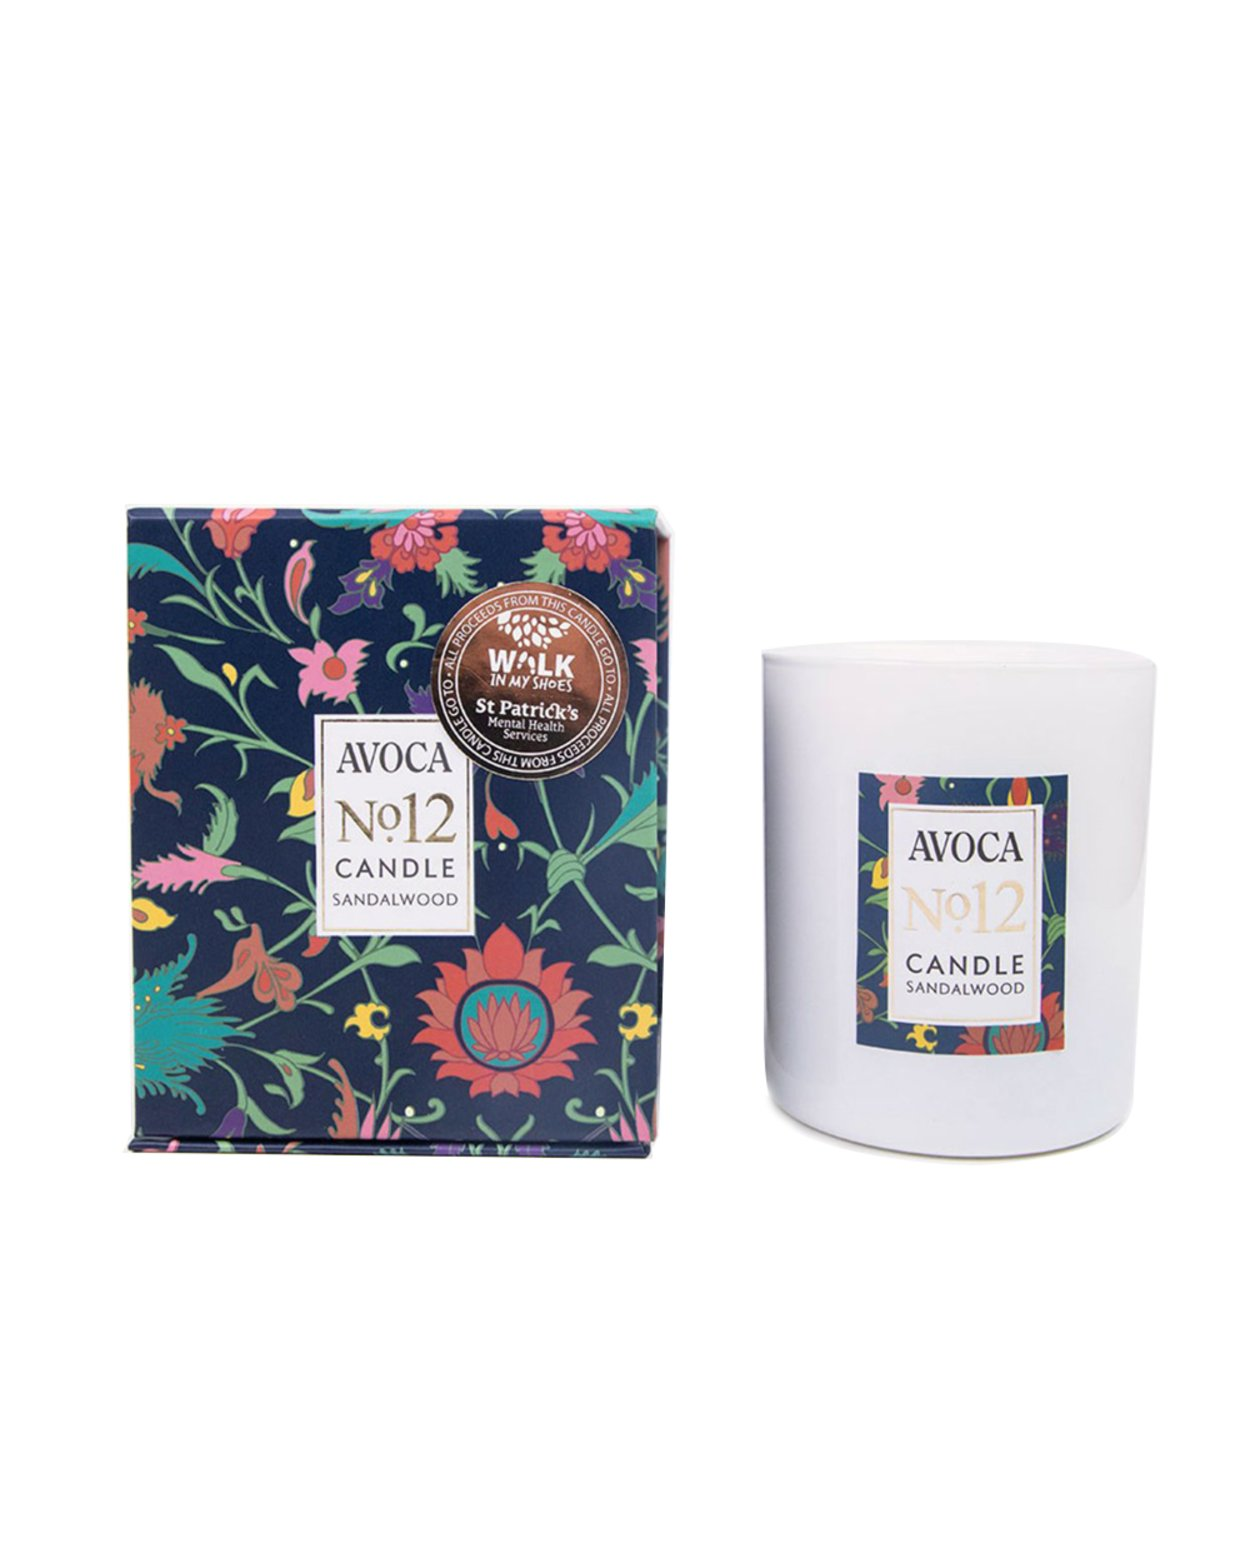 No. 12 Sandalwood Scented Candle